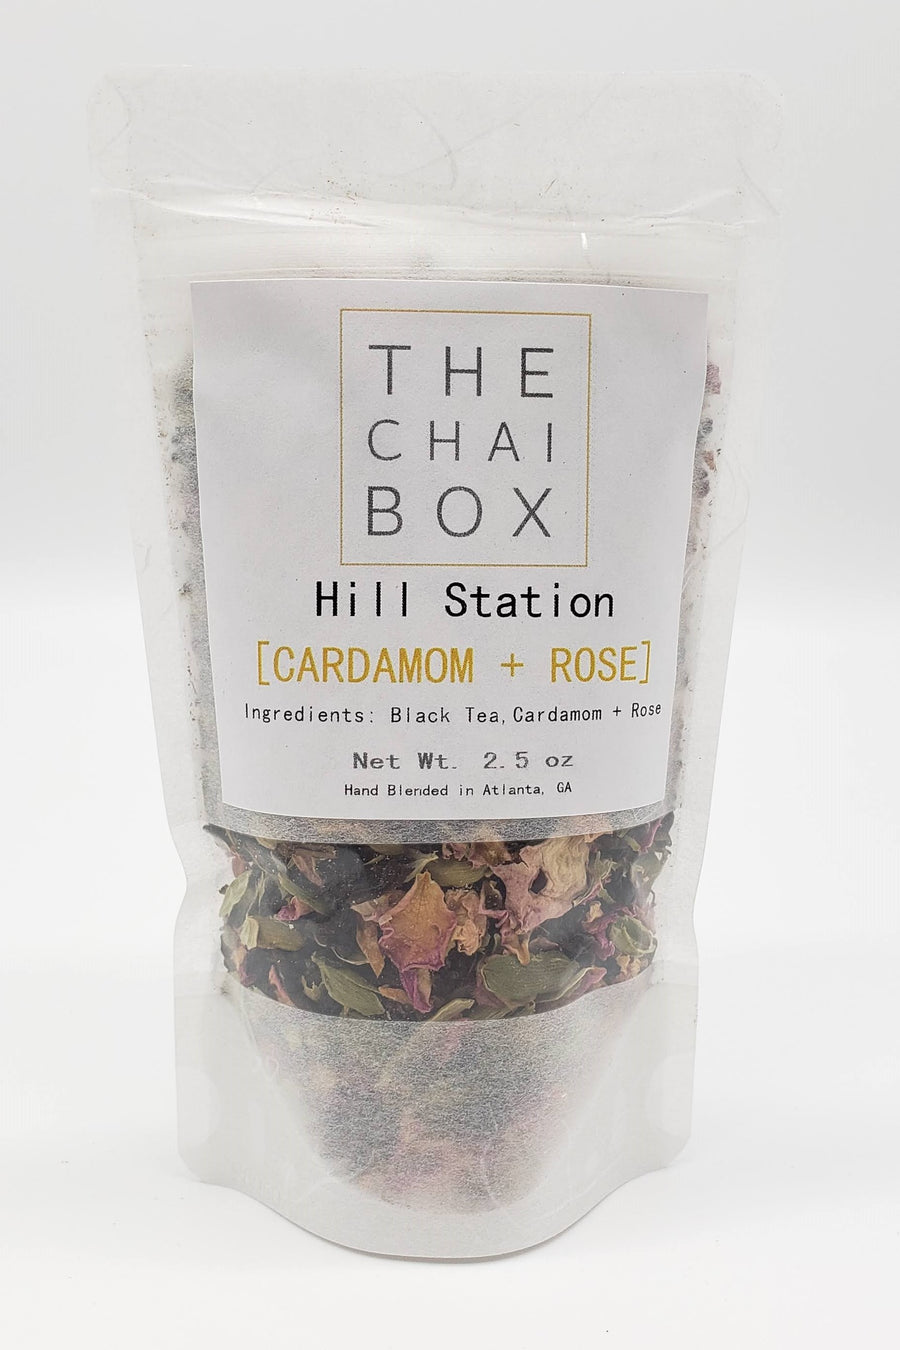 Hill Station [Cardamom + Rose]